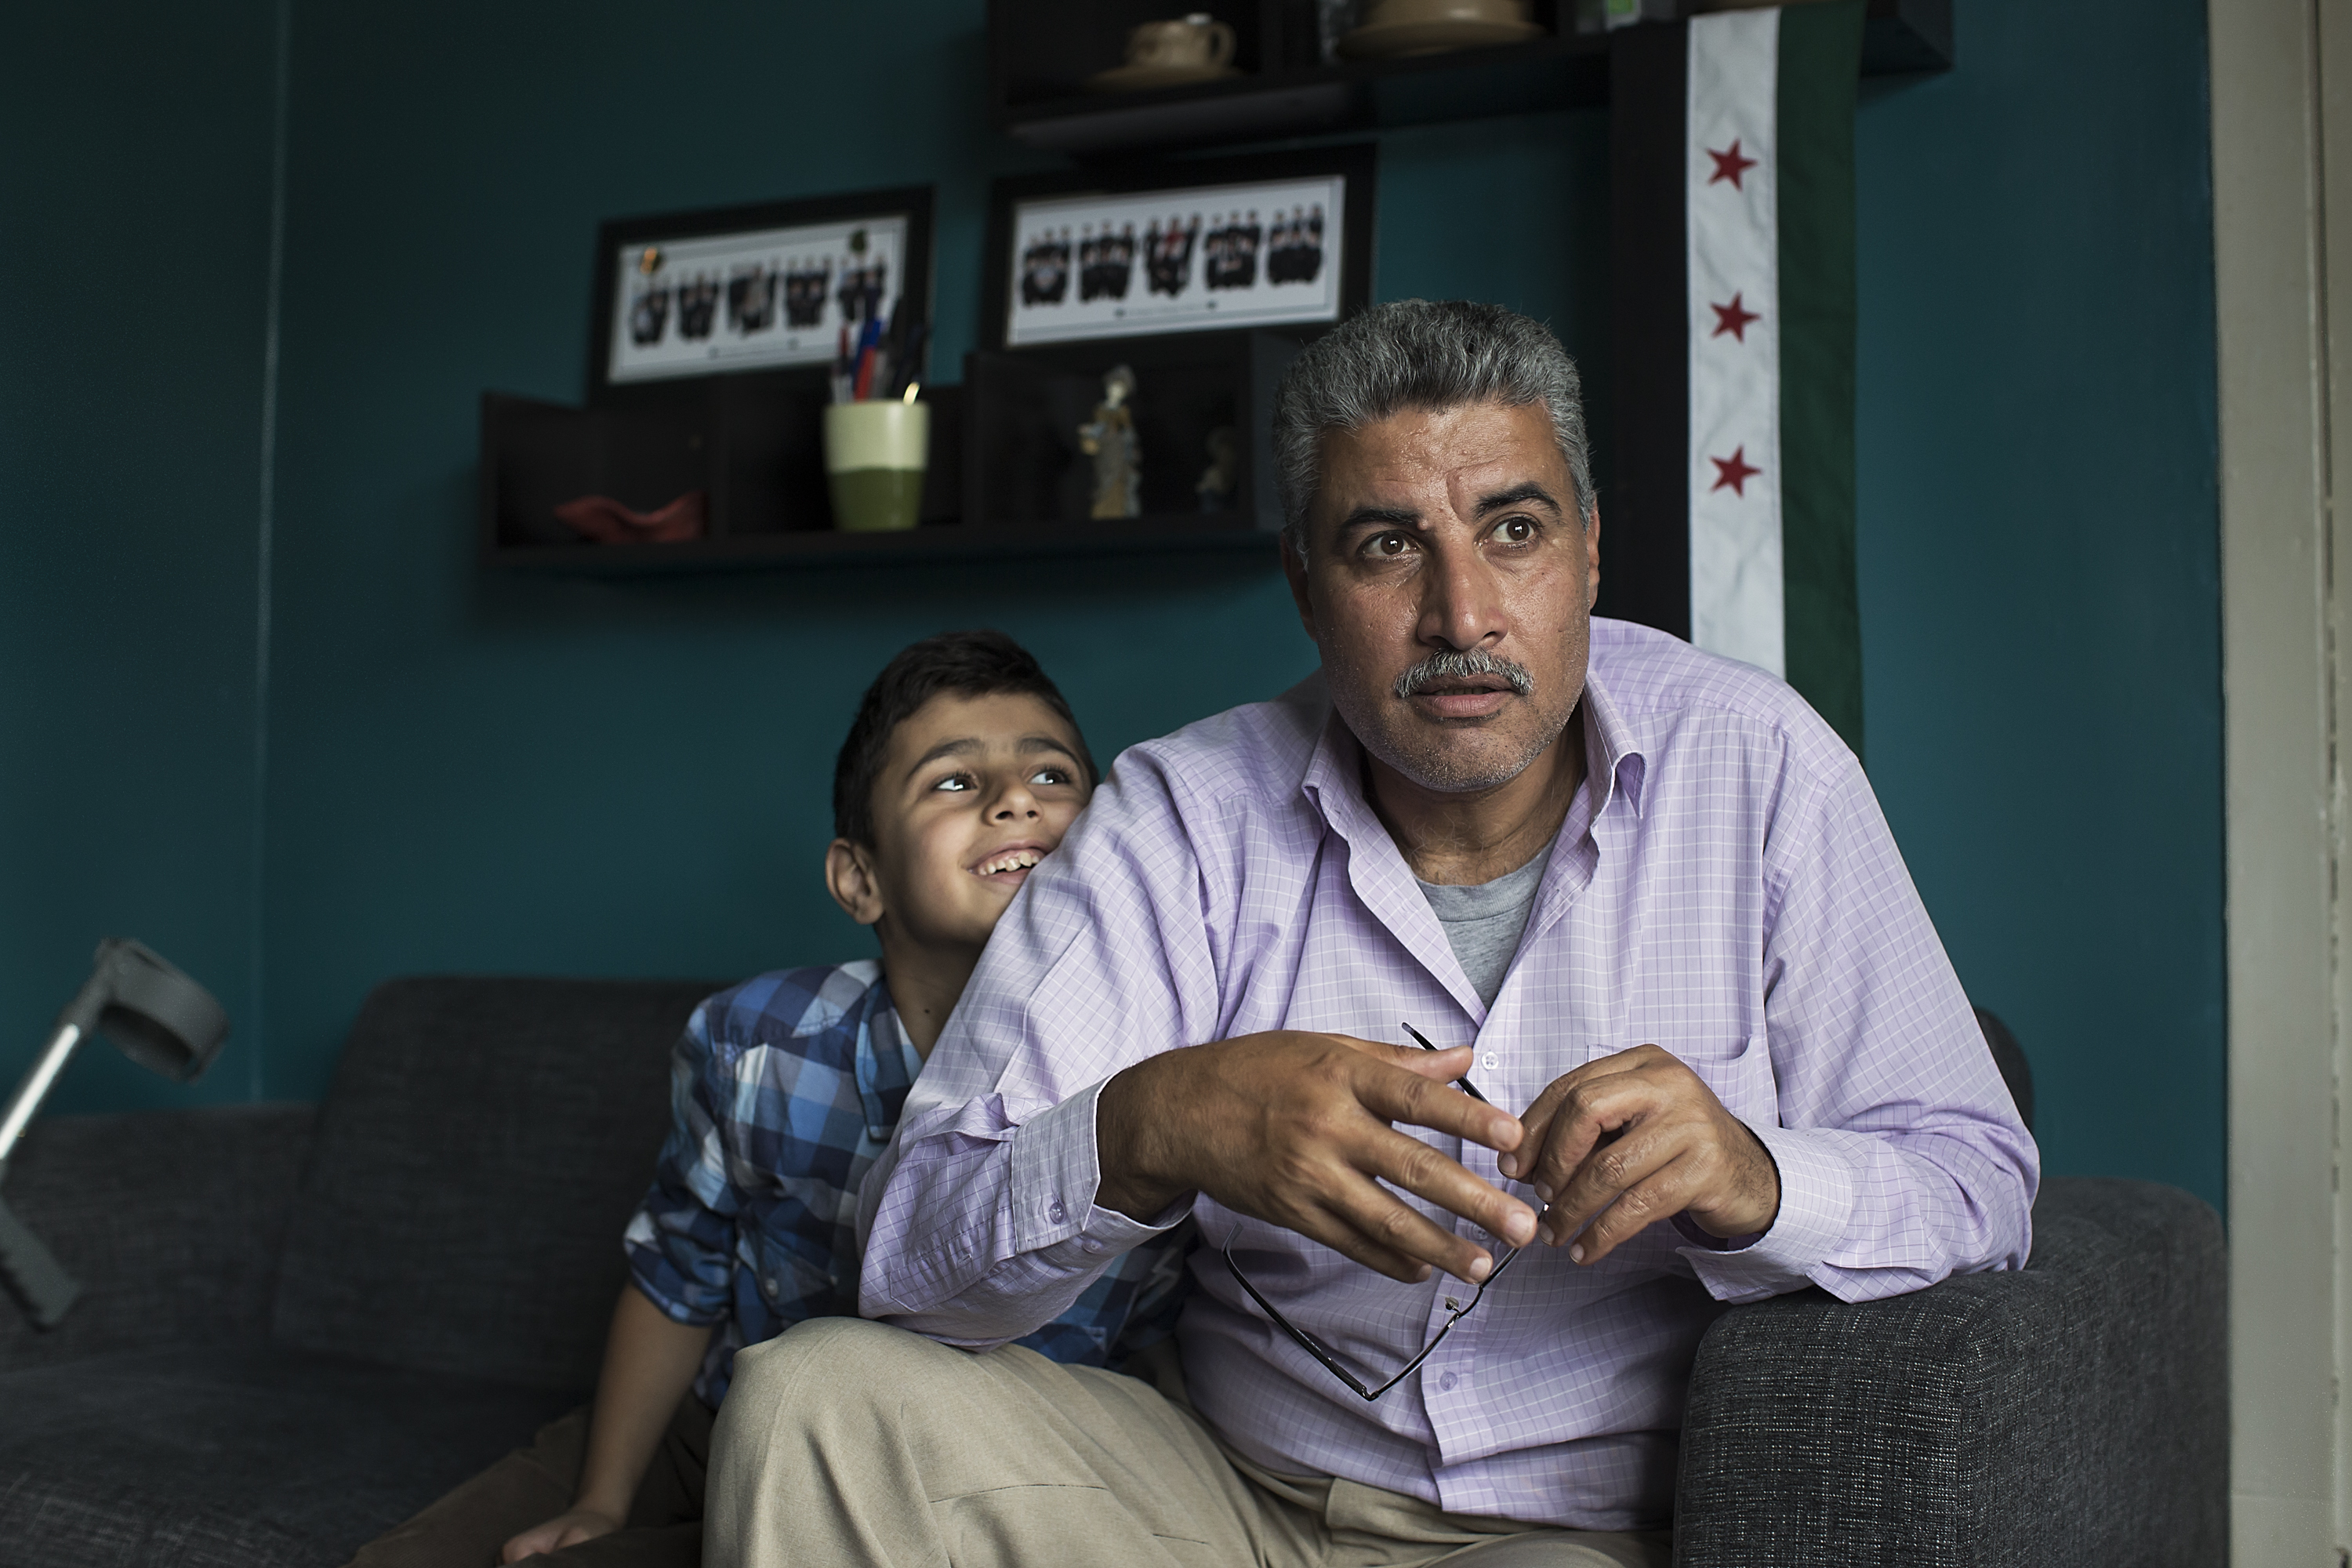 Thamer Al-Johmani sits at home as his youngest son Omar cuddles his father.